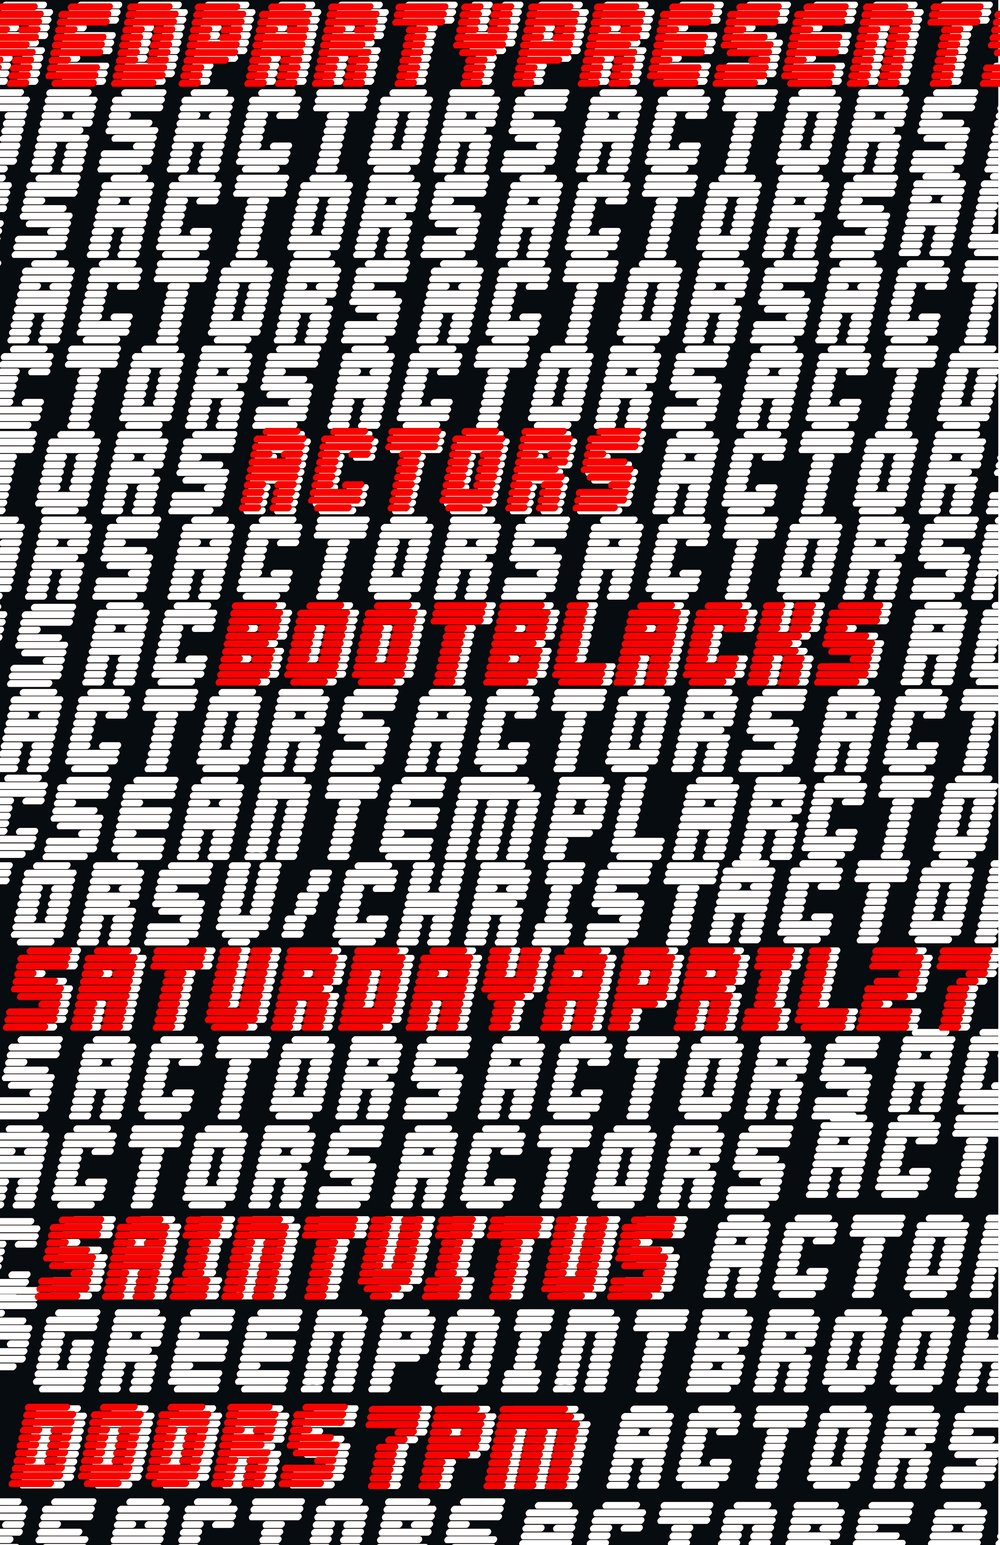 Actors & Bootblacks Live - Saturday April 27thThe Red Party is excited to presents:Actors & Bootblacks Live at Saint Vitus! with DJs Sean Templar & Matt V-Christabout Actors:The Jason Corbett-led outfit ACTORS are standing on the shoulders of titans with their brand of the style, and could almost be referred to as